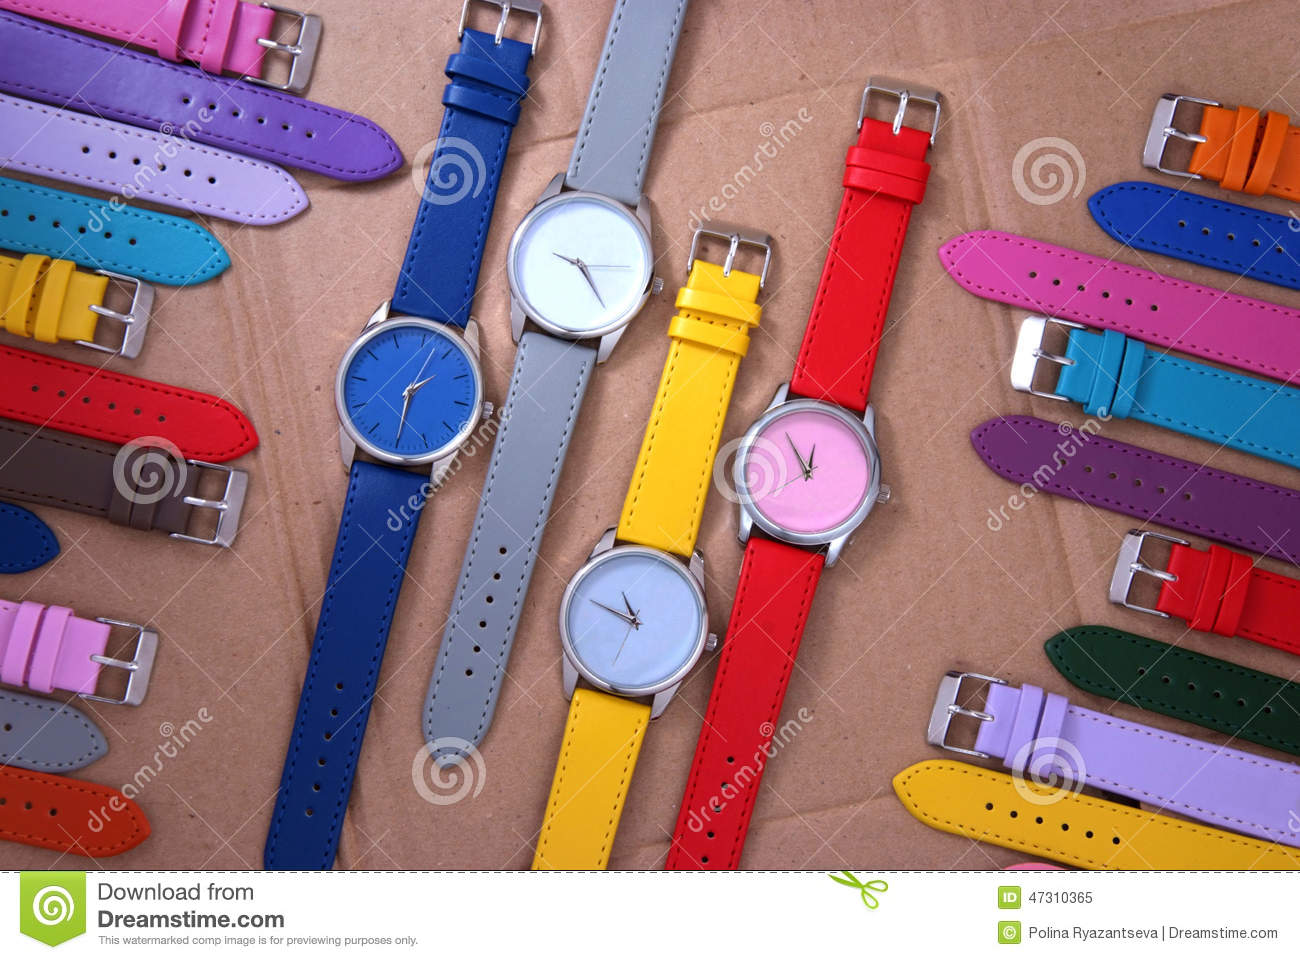 Colorful Watches On Cardboard Background Stock Photo ...